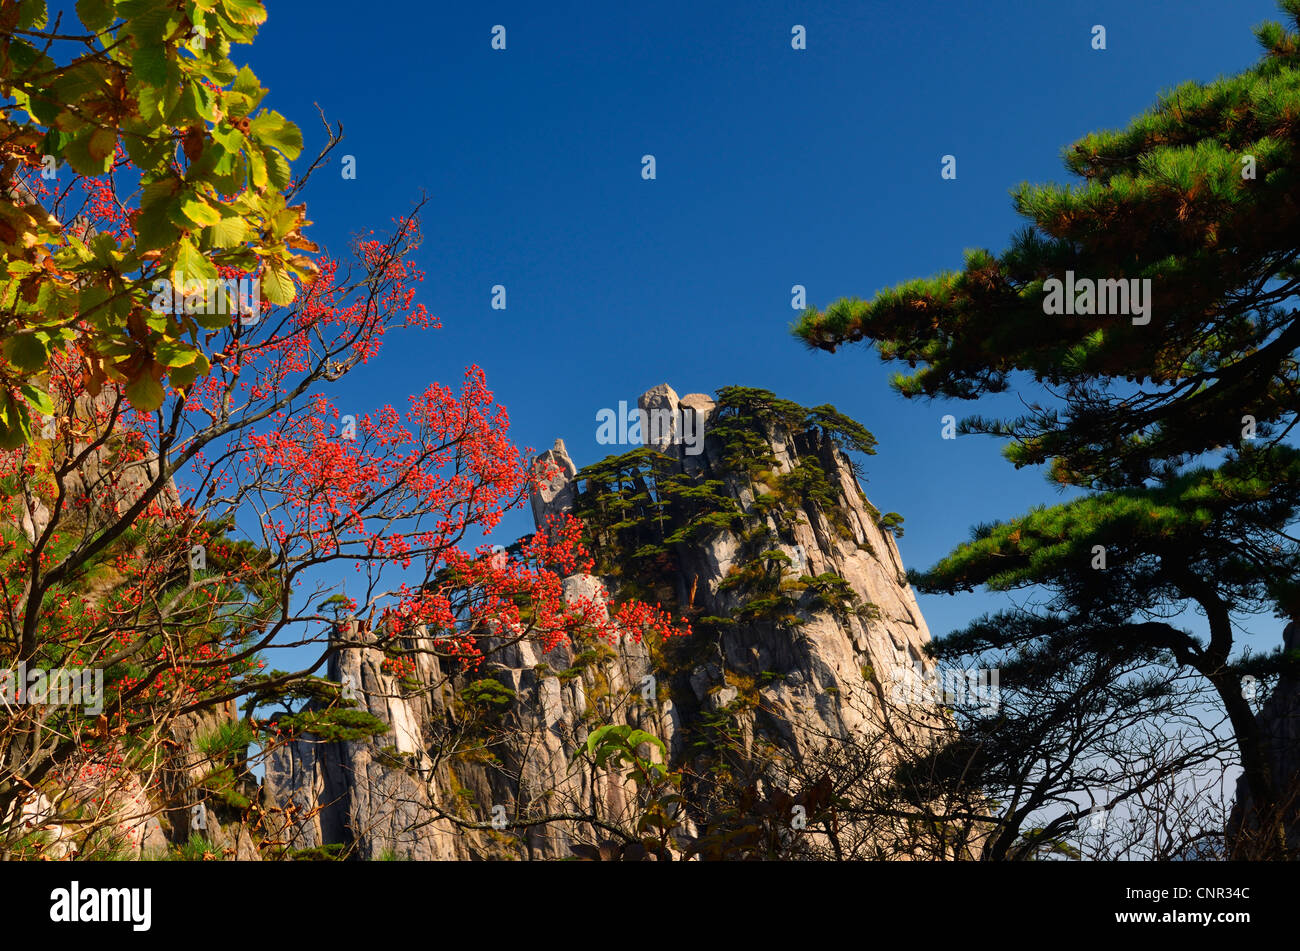 Red Mountain Ash berries at Beginning to Believe Peak Yellow Mountain Huangshan China with blue sky - Stock Image